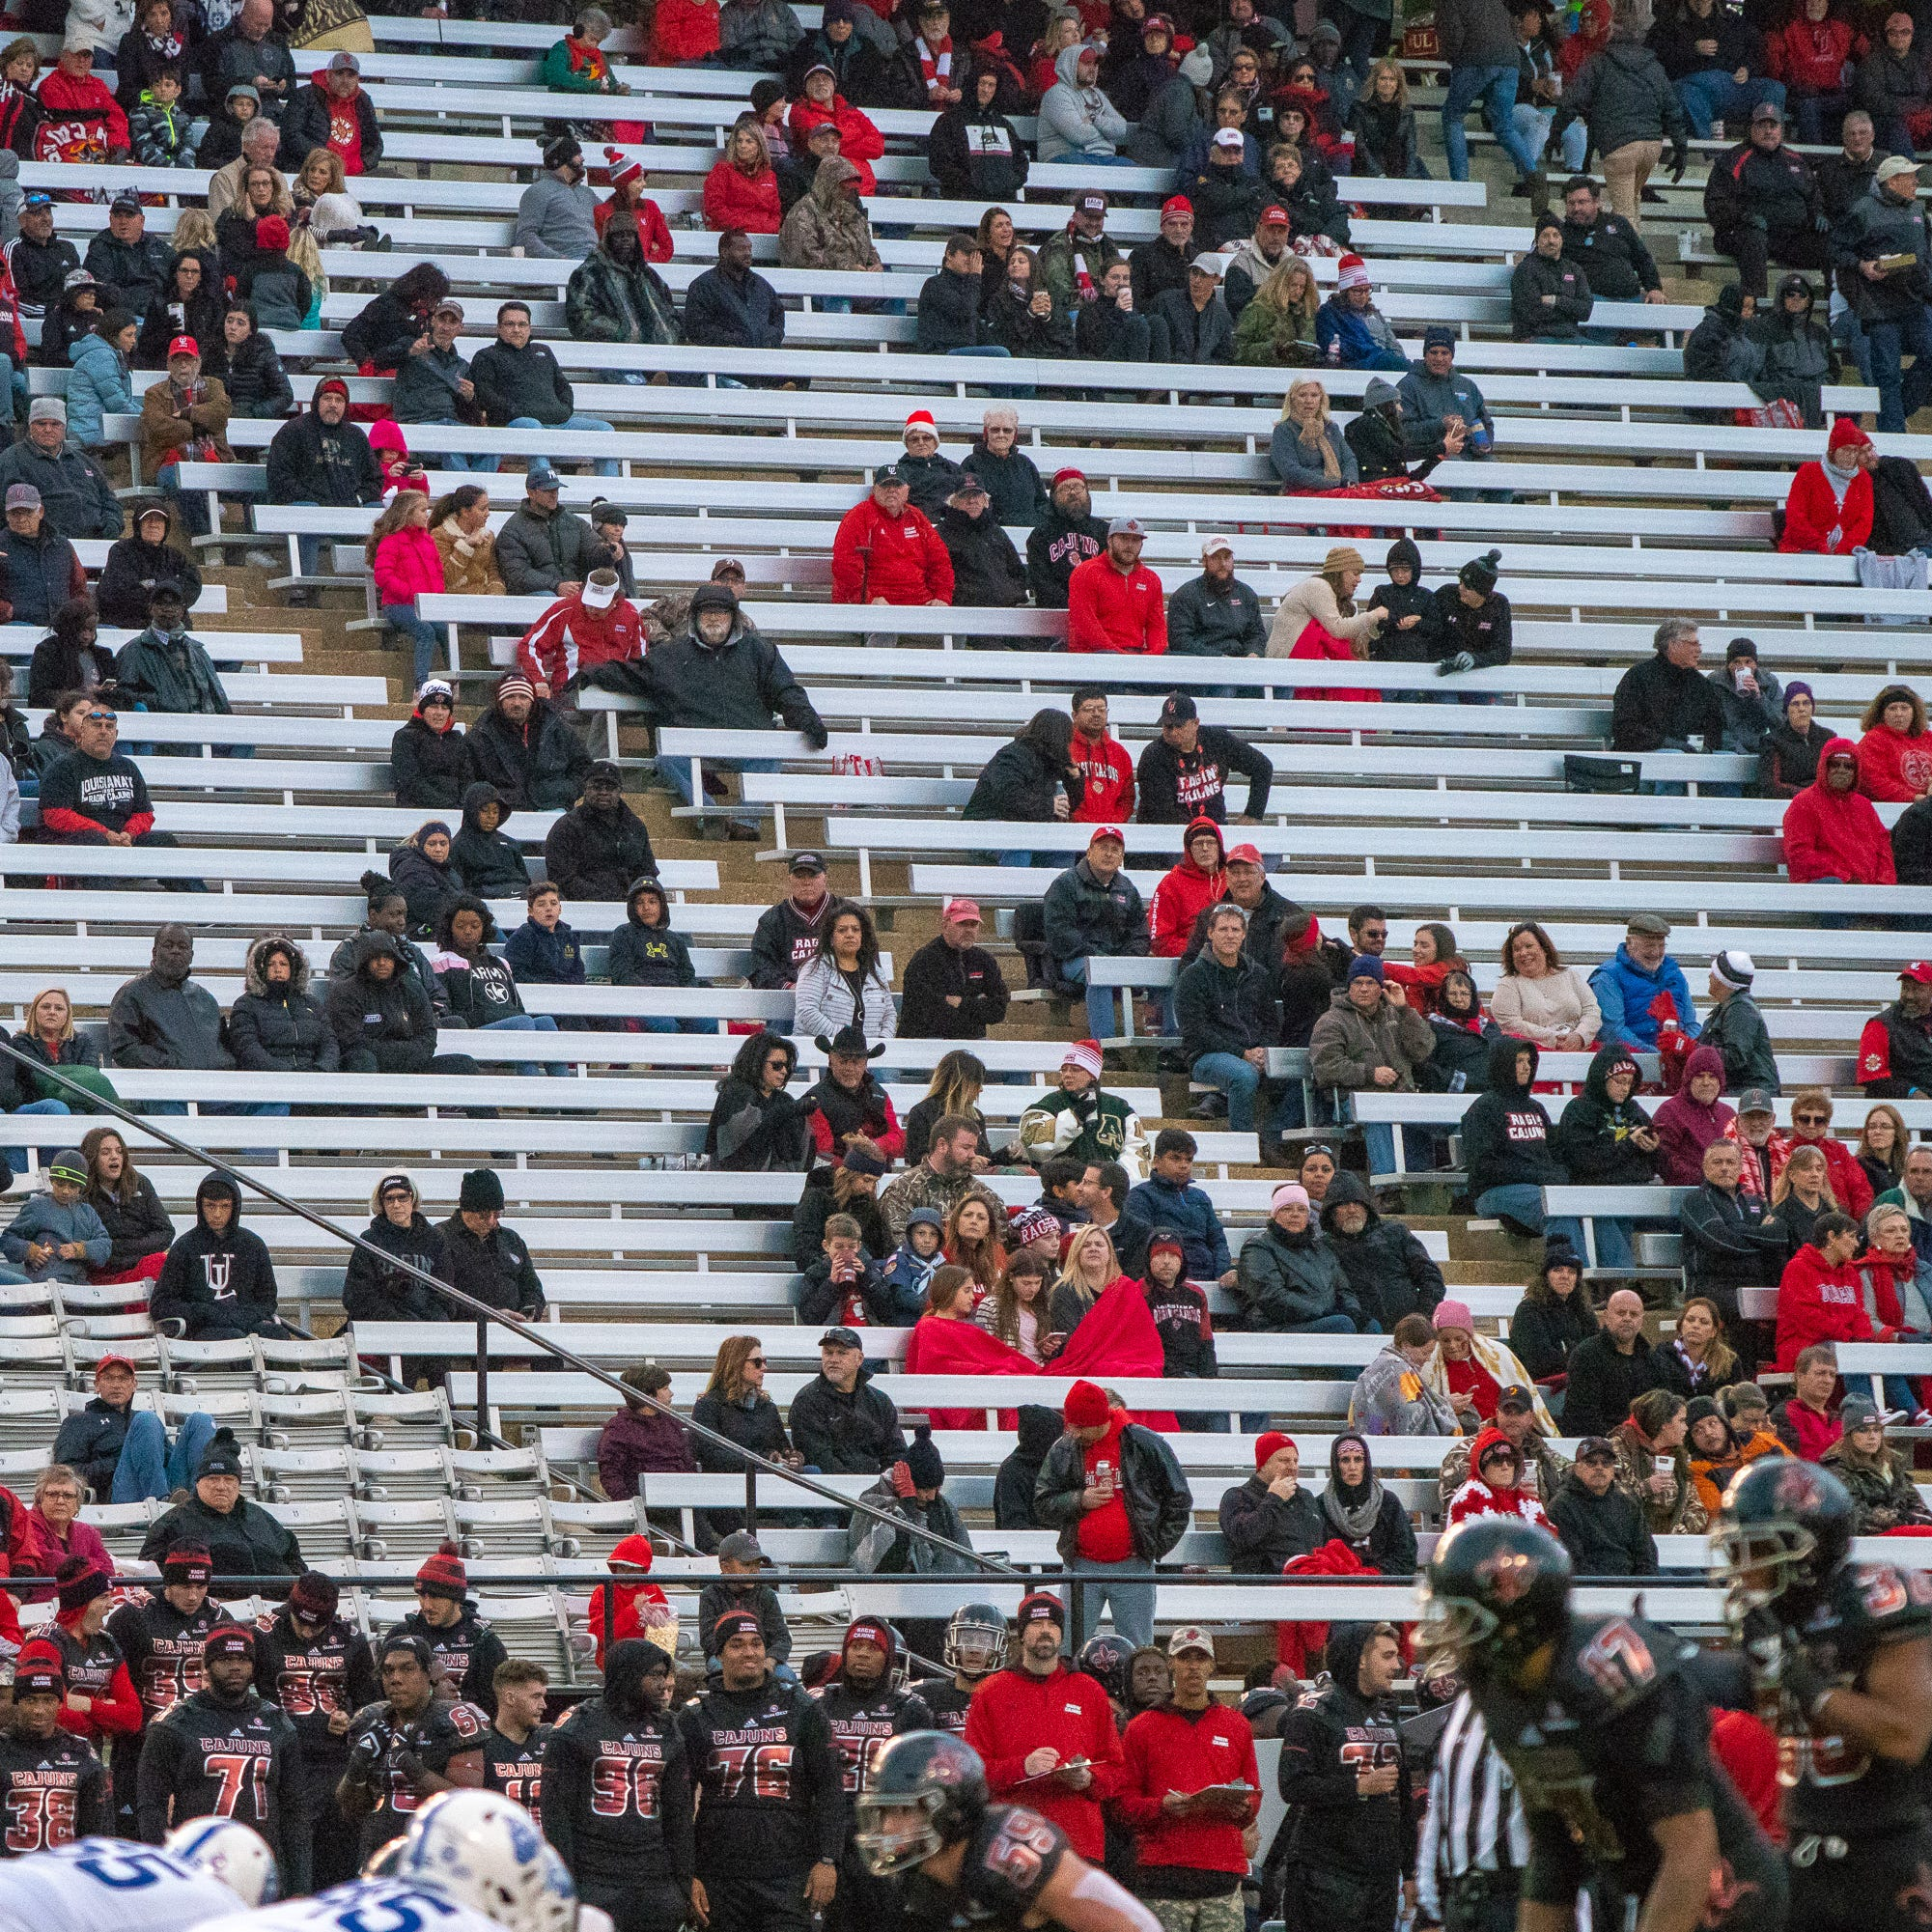 UL's balancing act: Attracting fans while elevating the program